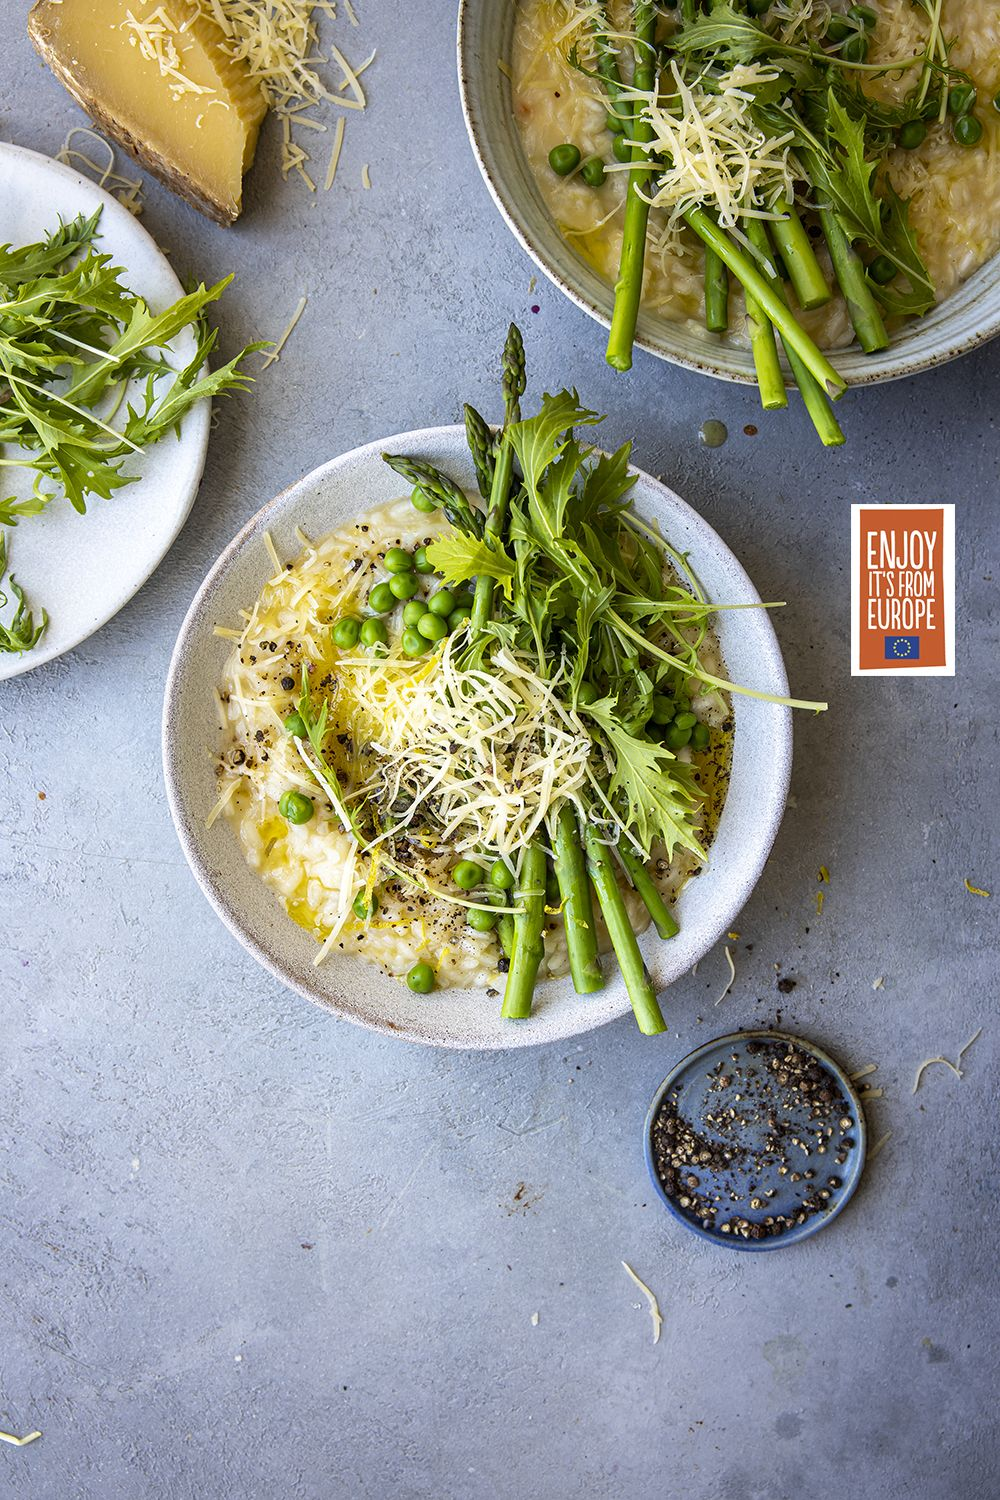 Pea___asparagus_risotto-2_copy_with_logo